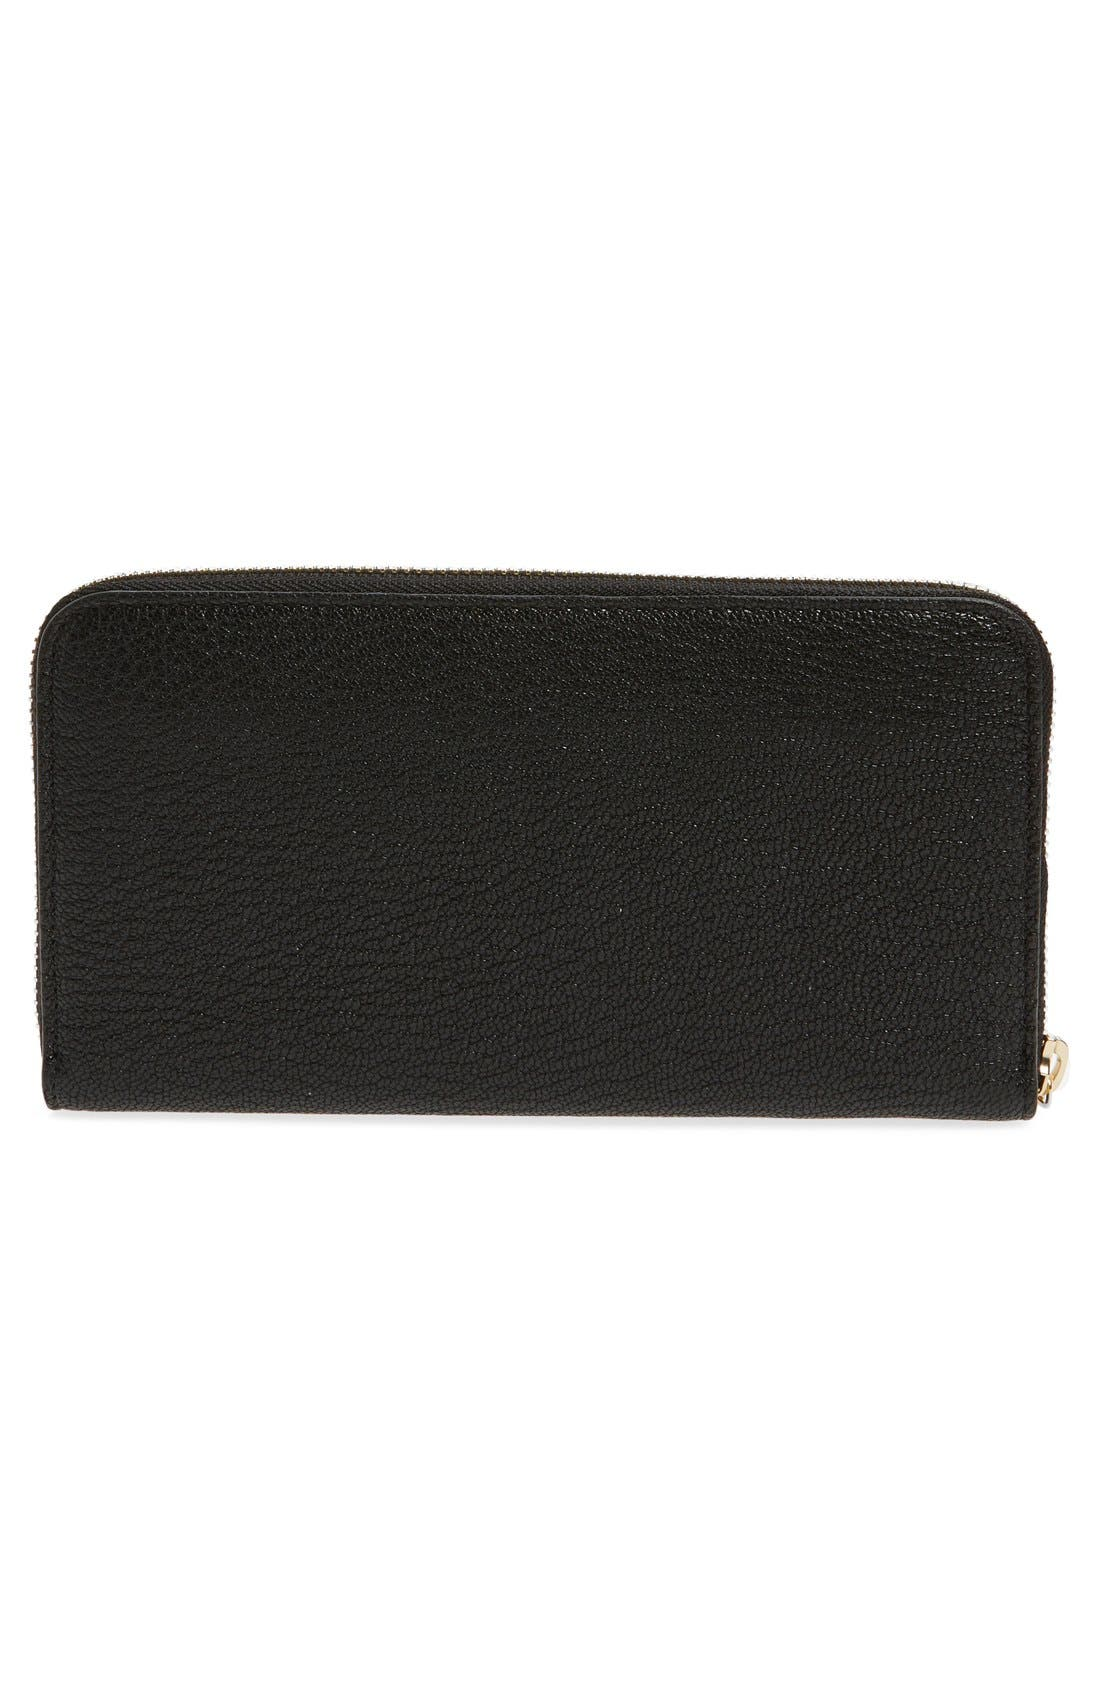 Alternate Image 3  - Chloé 'Drew' Calfskin Leather Zip Around Wallet